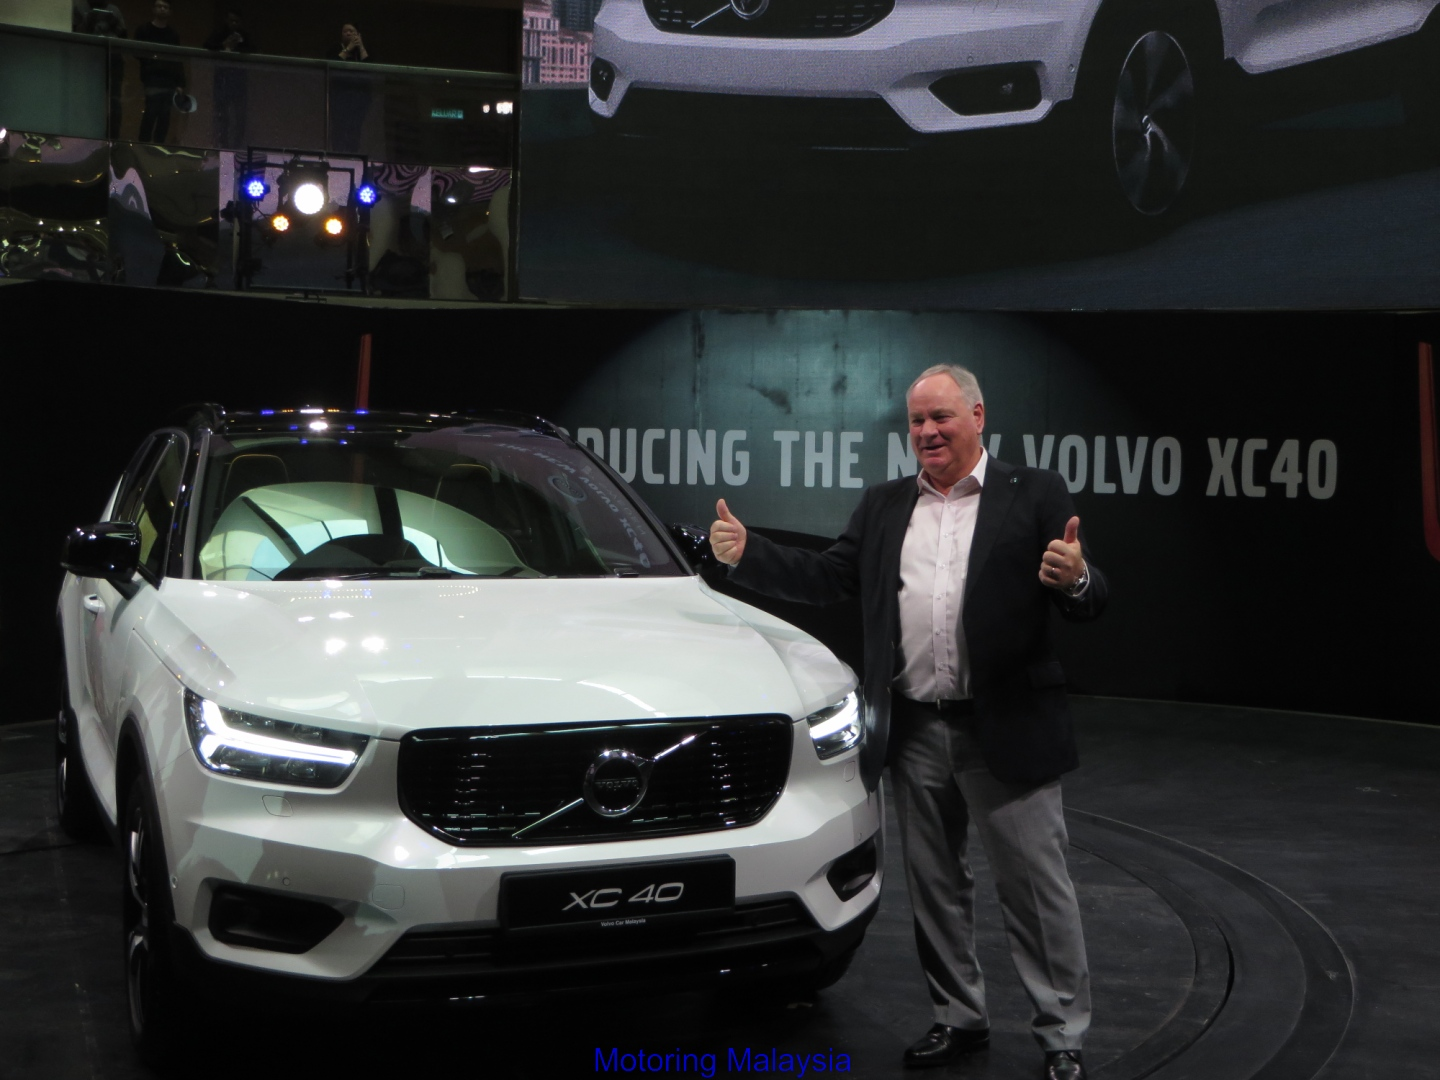 Motoring Malaysia Volvo Car Malaysia Launches The Volvo Xc40 The